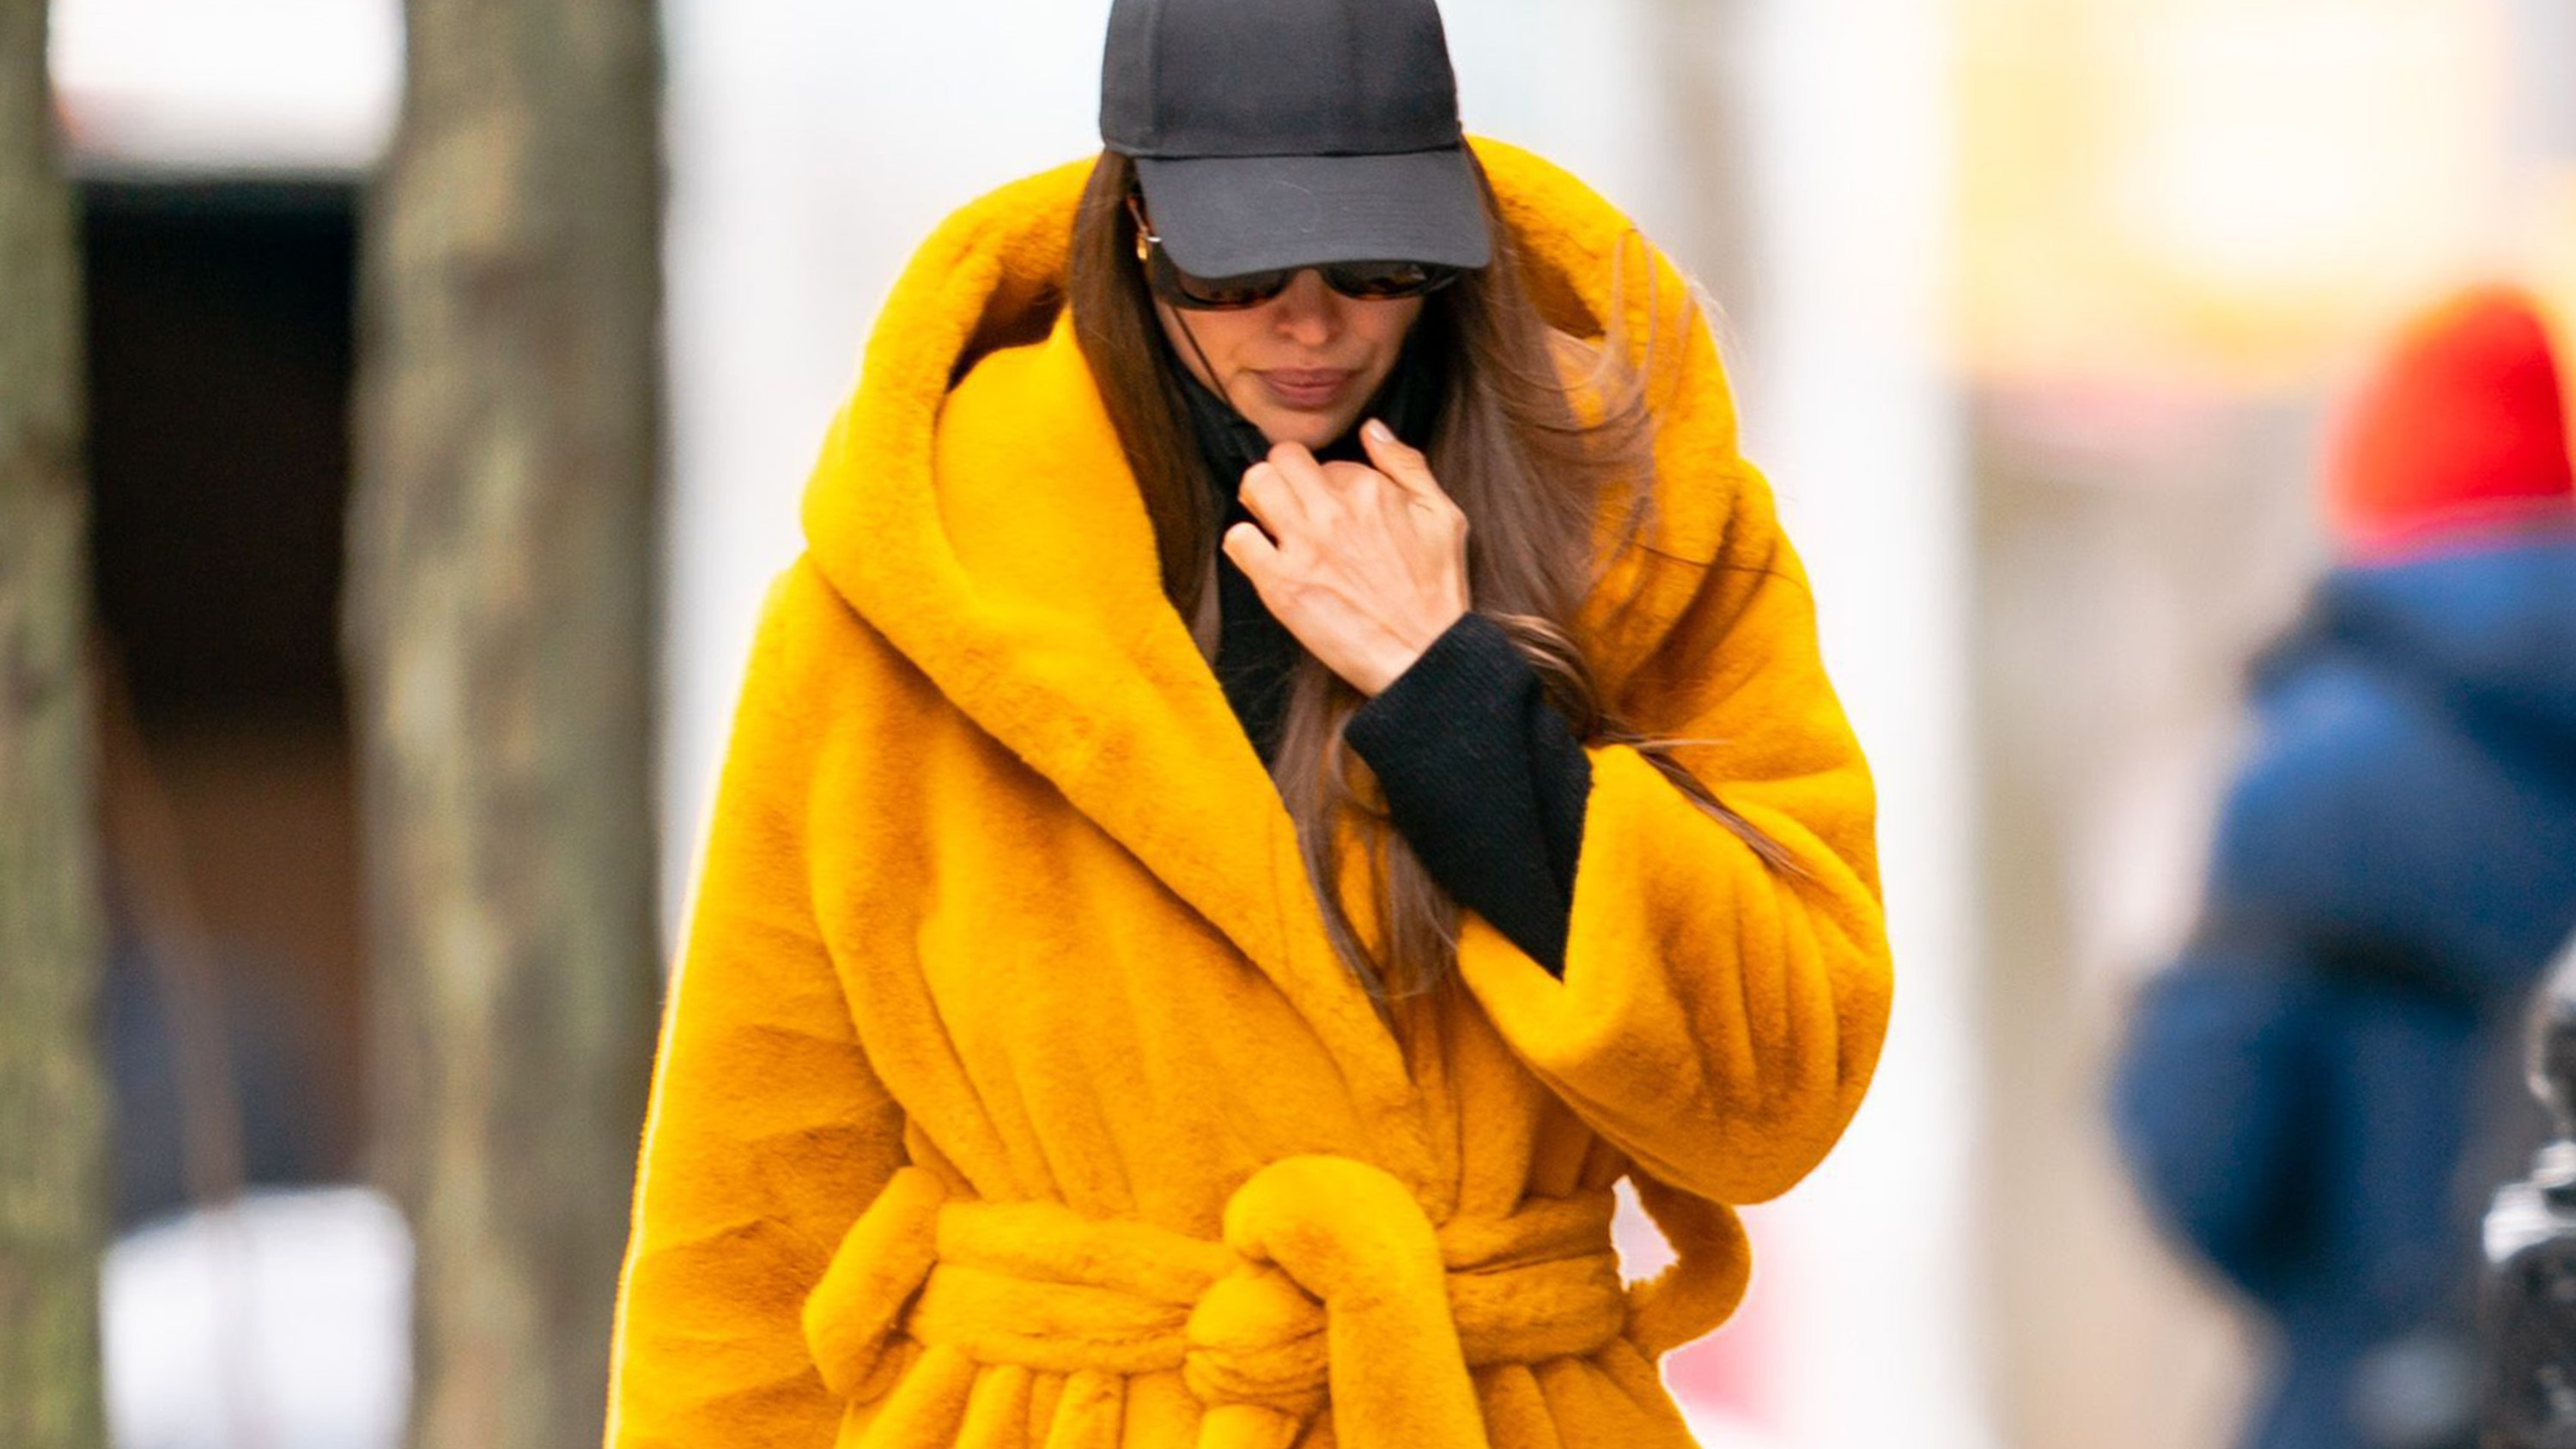 Irina Shayk Wearing Bathrobe-Chic Out In NYC Is A Vibe